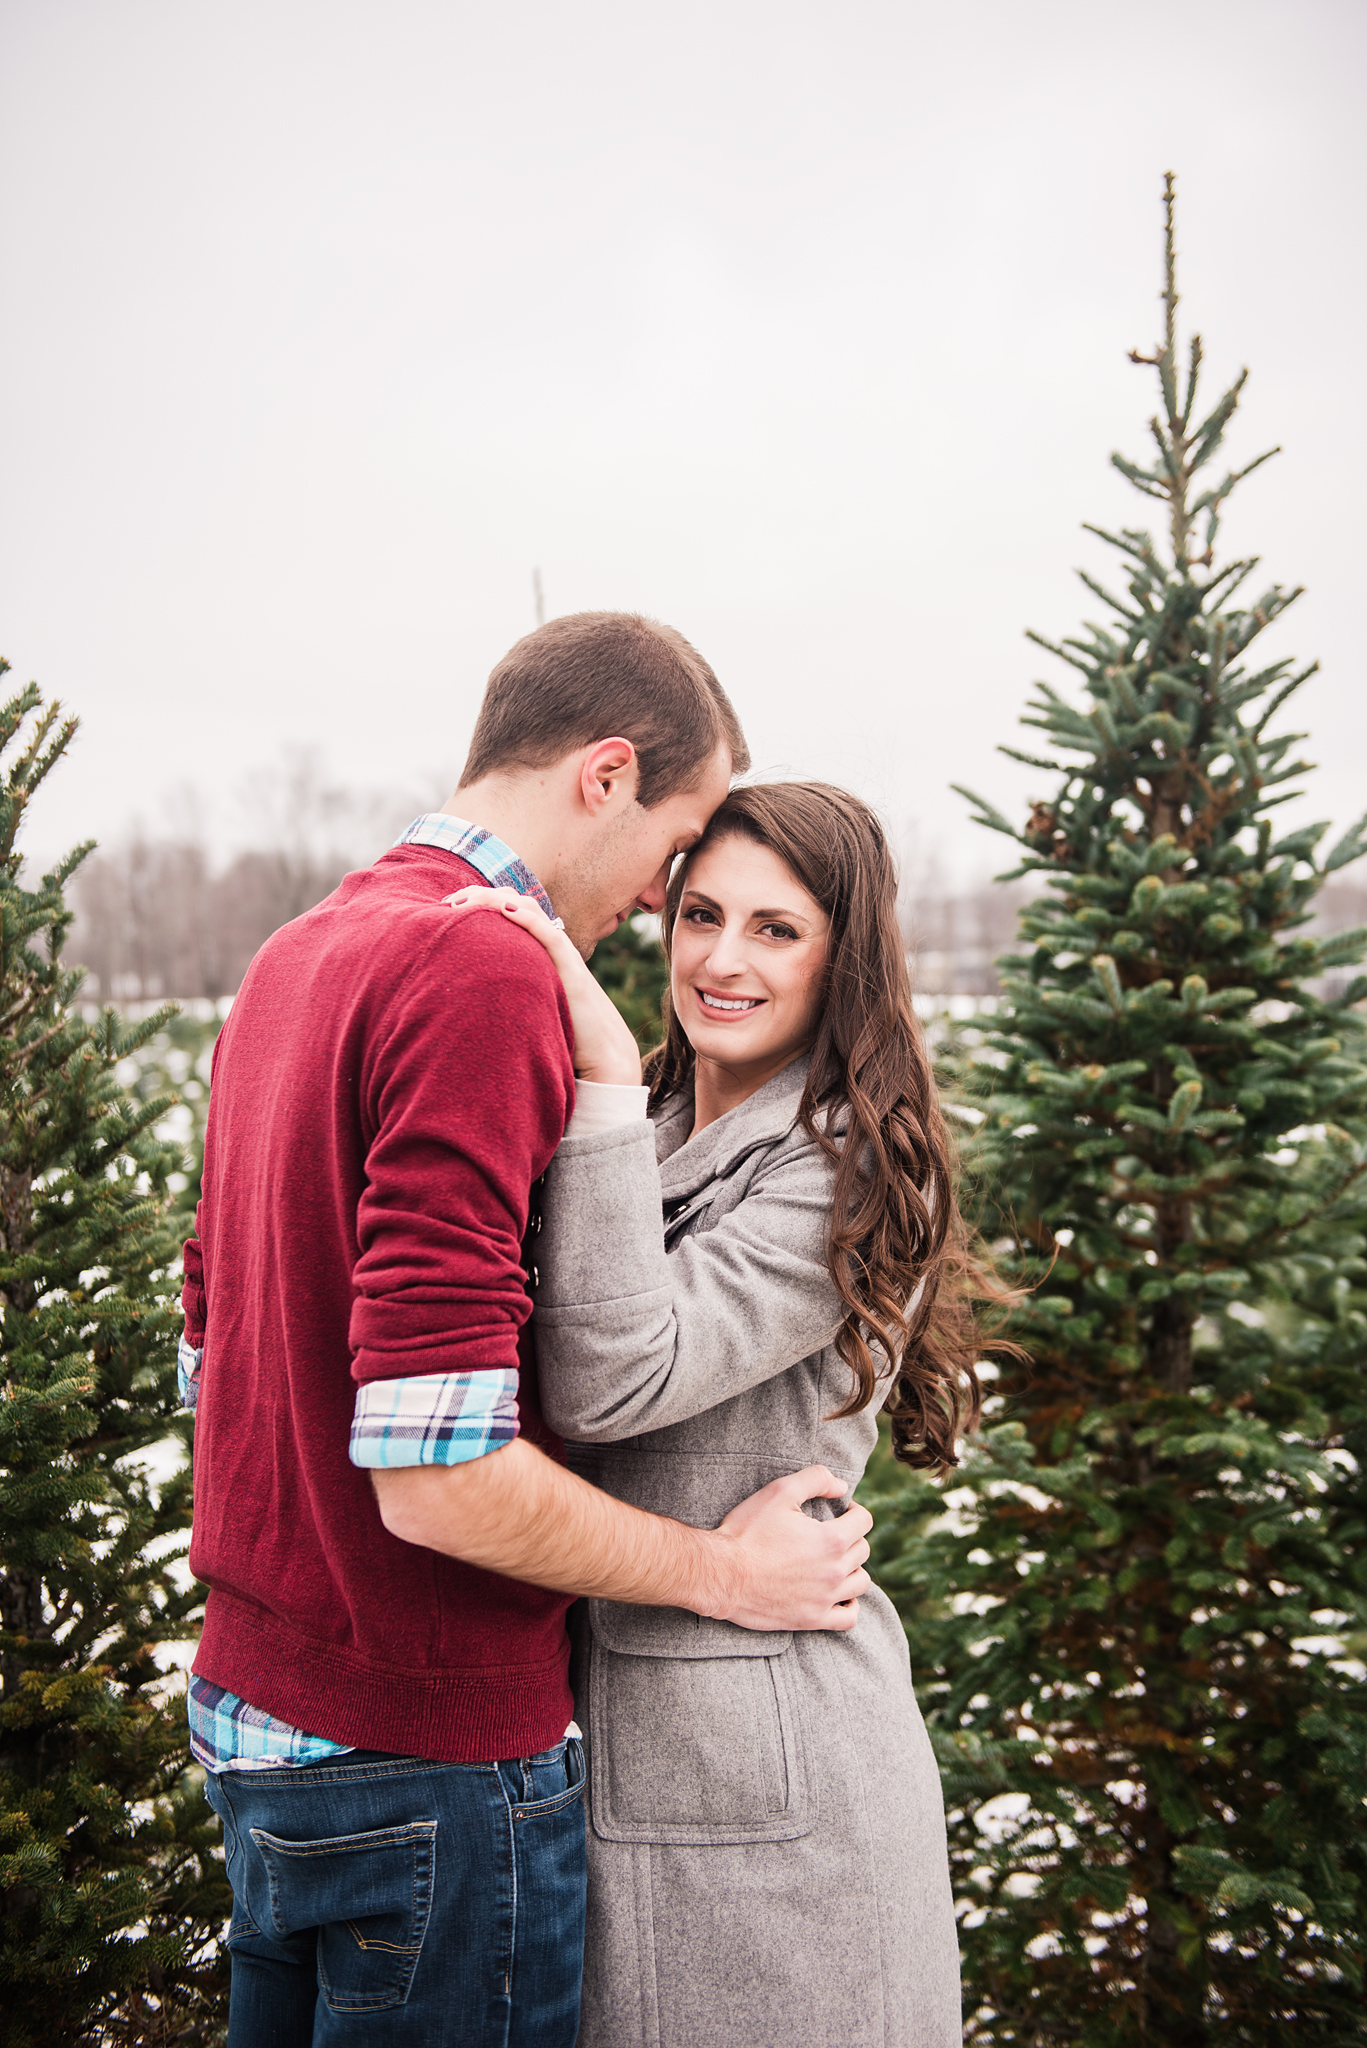 Woody_Acres_Rochester_Engagement_Session_JILL_STUDIO_Rochester_NY_Photographer_152303.jpg